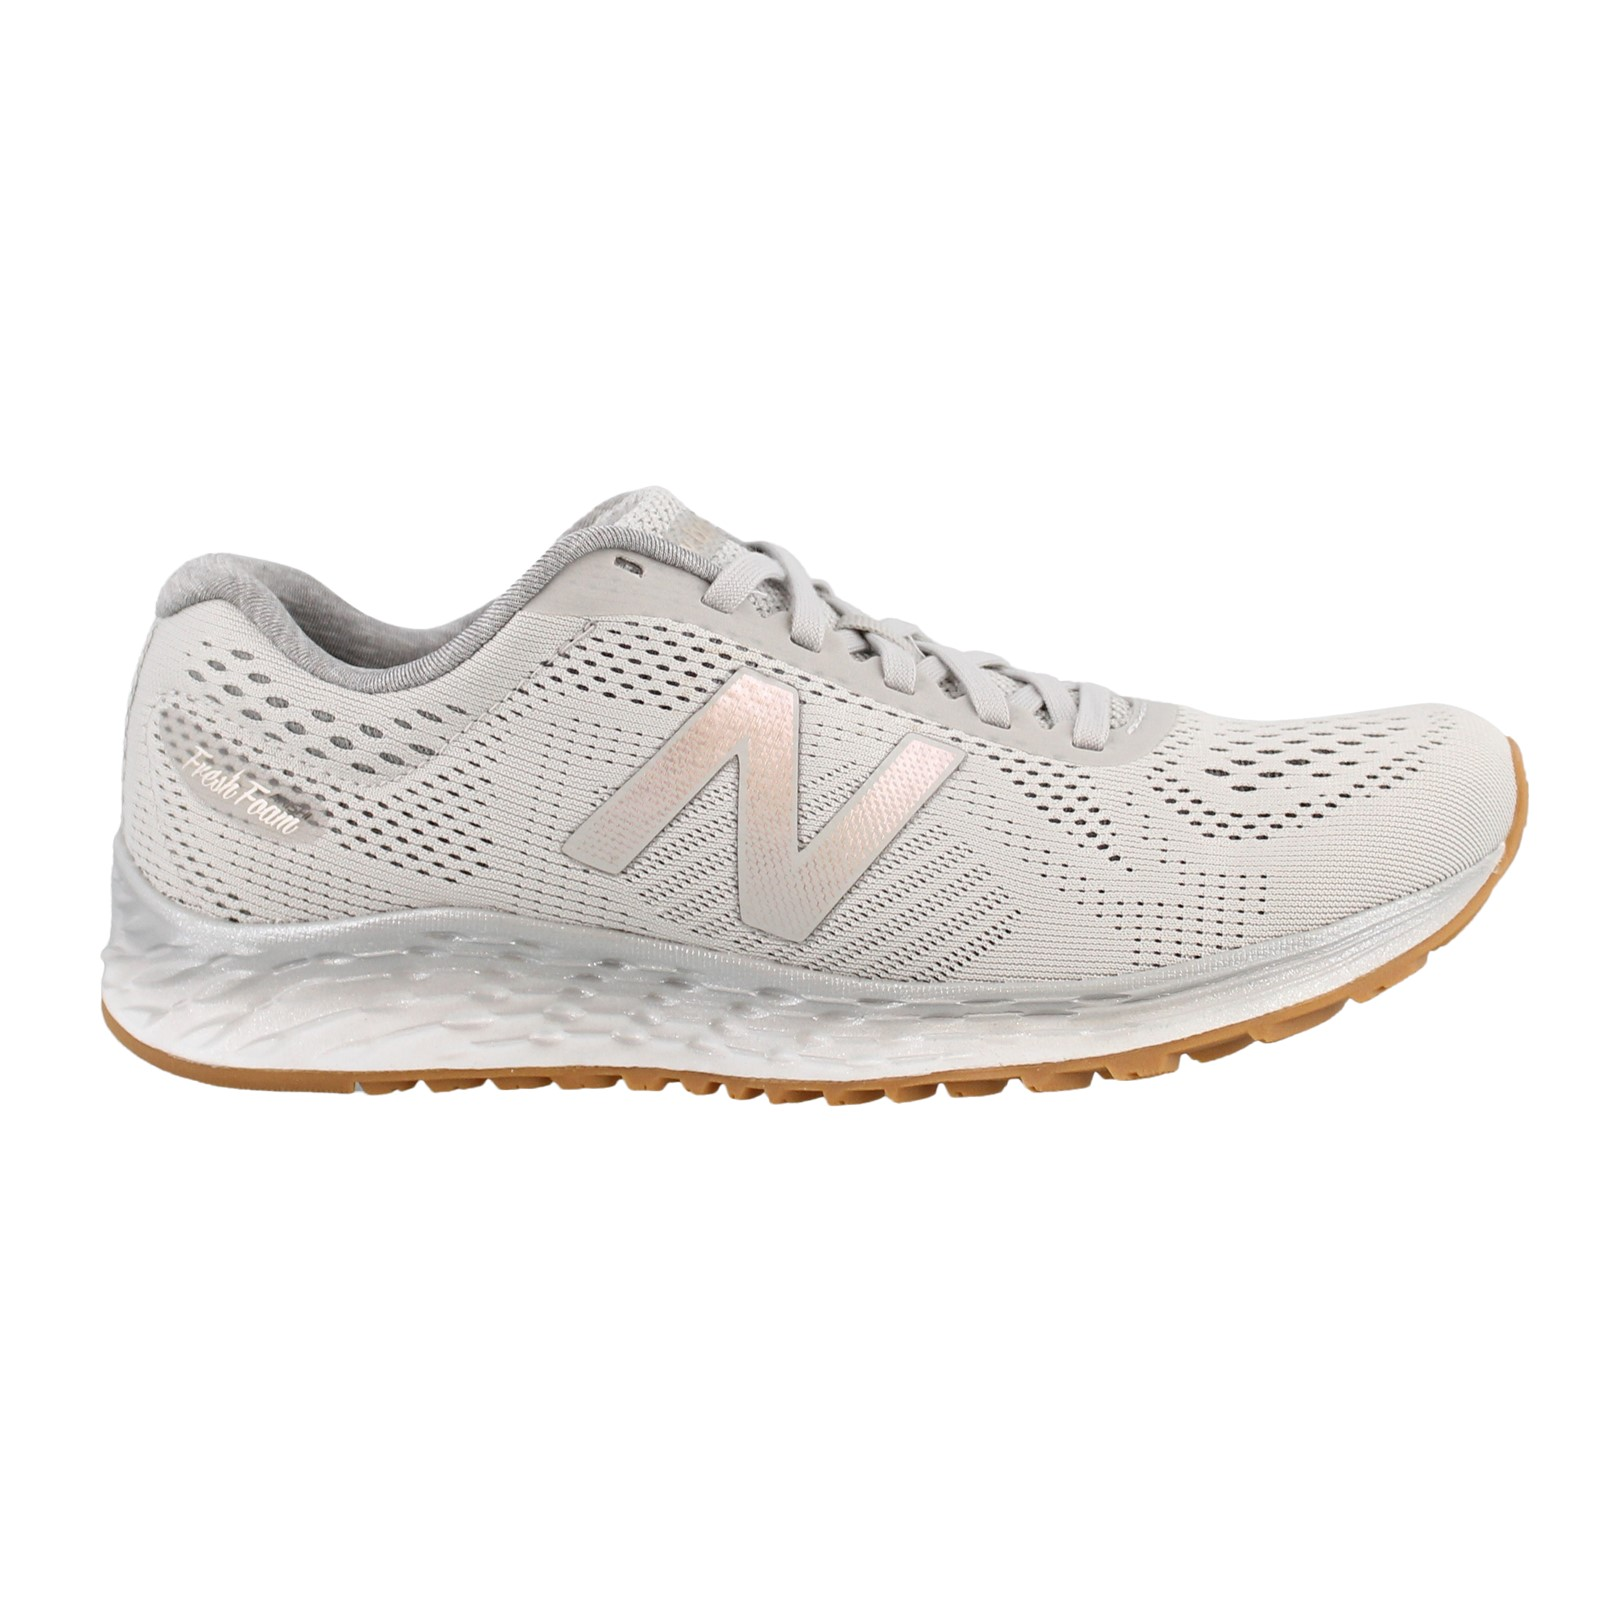 wholesale dealer 378c1 f7677 Women's New Balance, Arishi Fresh Foam Running Sneakers